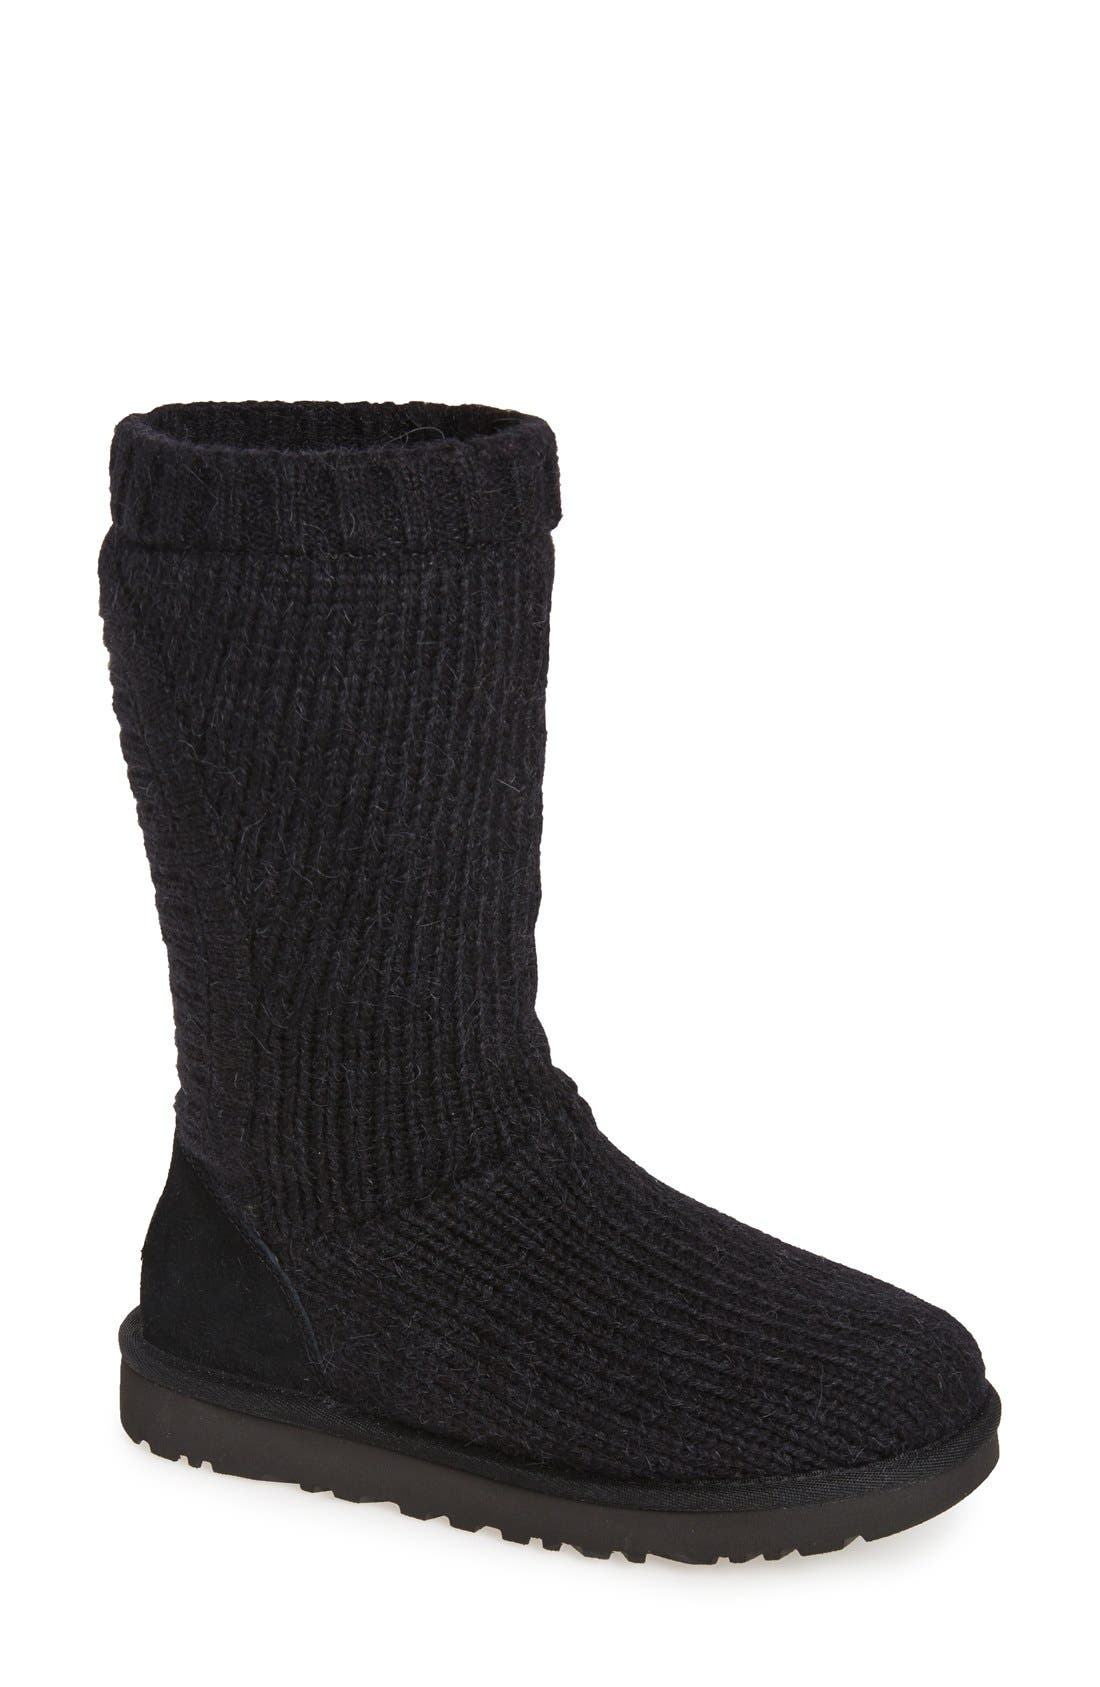 'Capra' Ribbed Knit Genuine Shearling Lined Boot, Main, color, 001